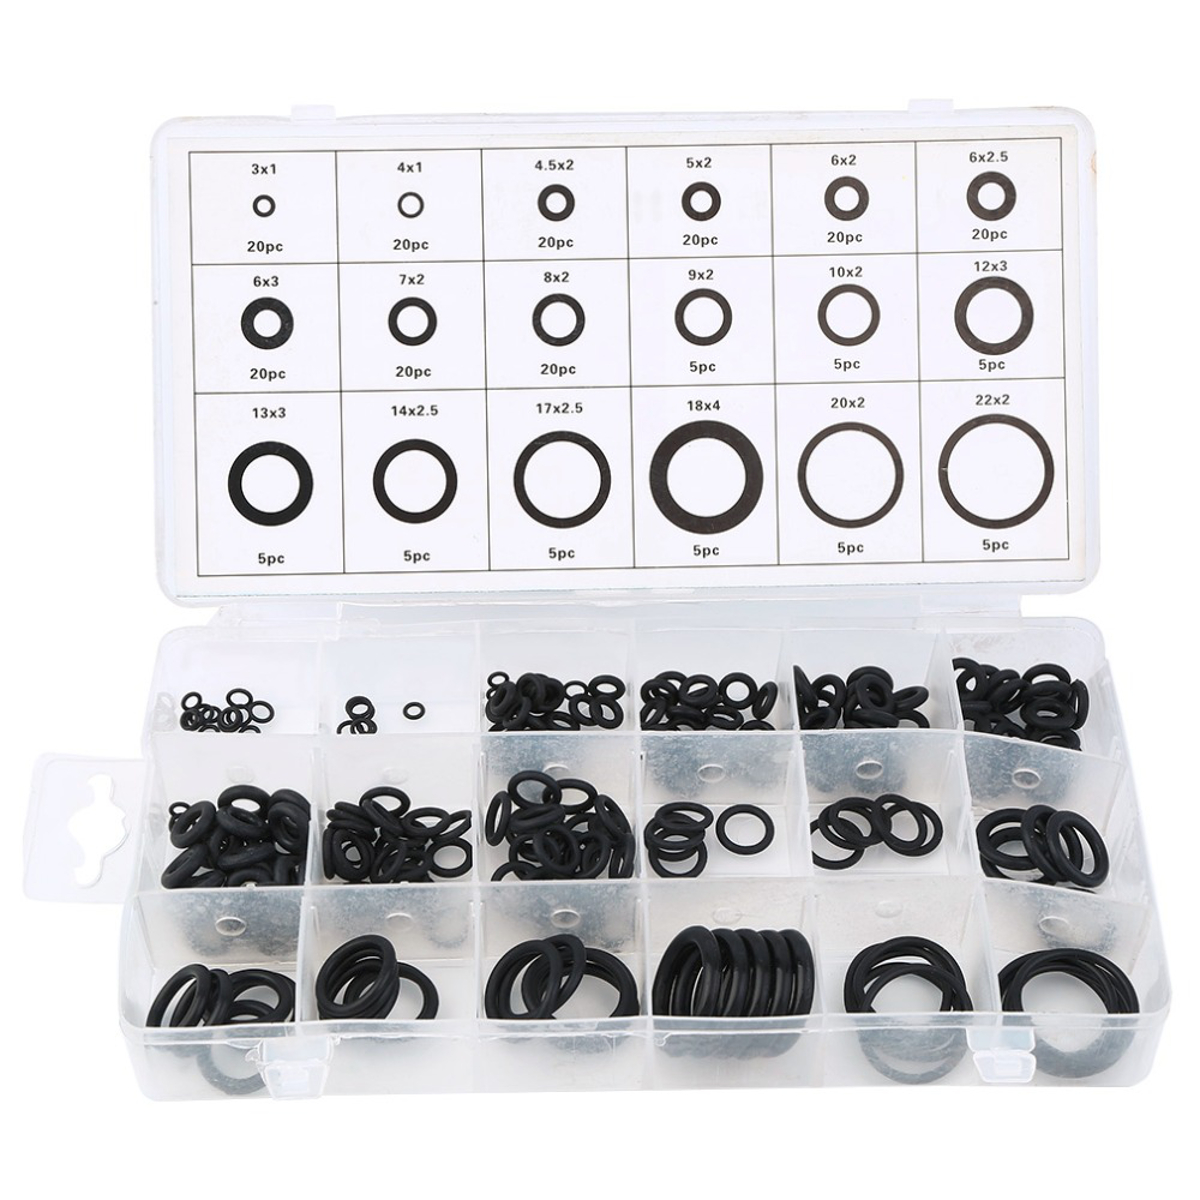 225Pcs Rubber O Ring Washer Hydraulic Plumbing Gasket Seal Assortment Set